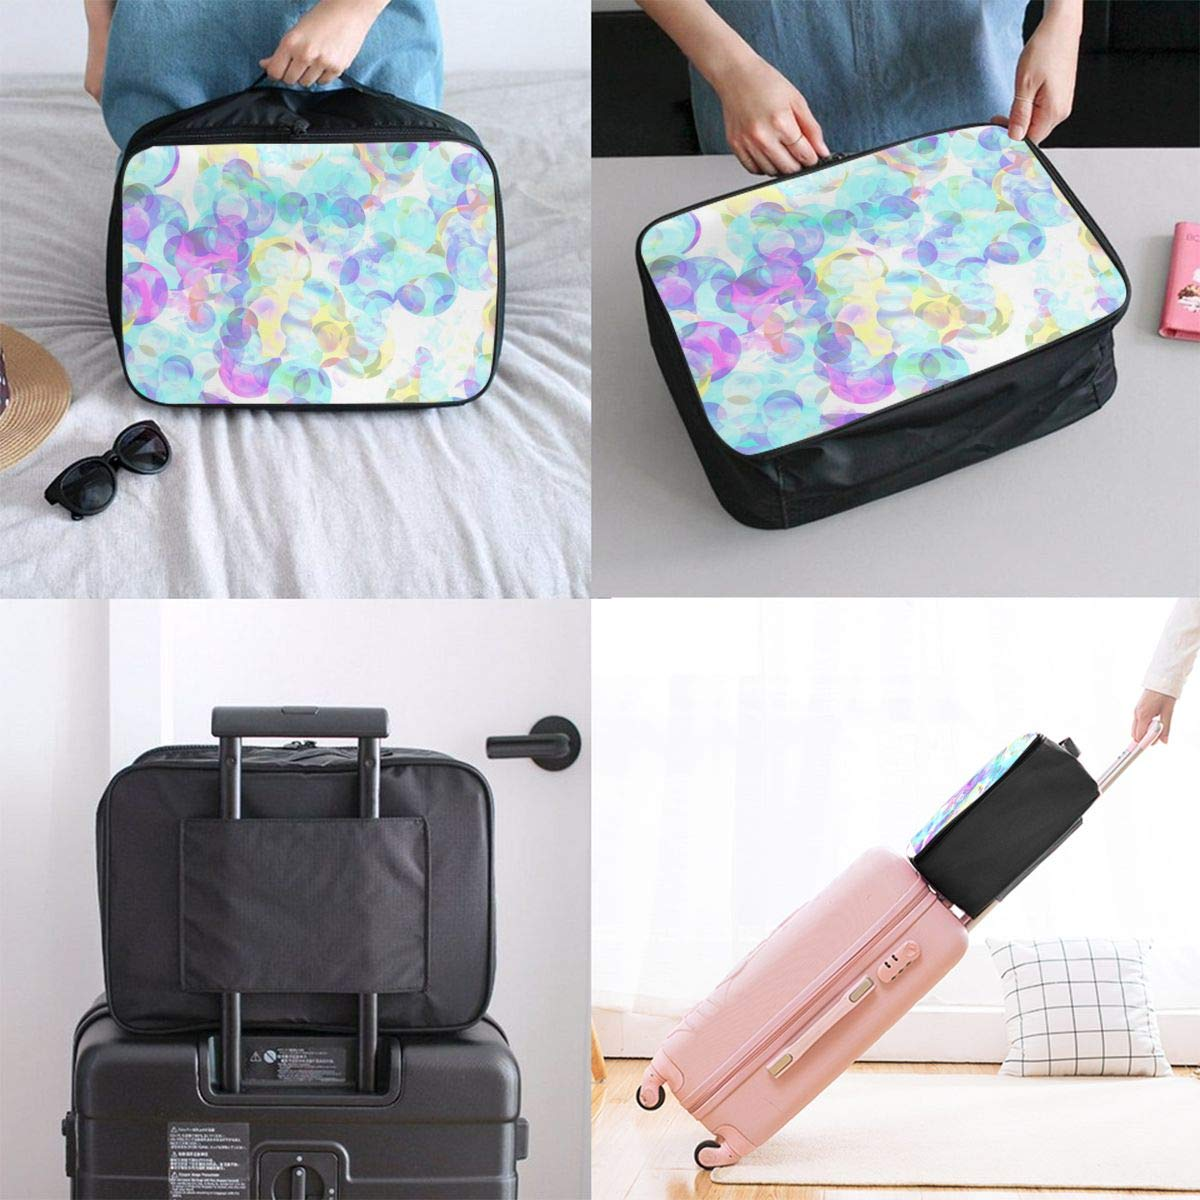 Abstract Art Bubble Travel Lightweight Waterproof Foldable Storage Carry Luggage Large Capacity Portable Luggage Bag Duffel Bag